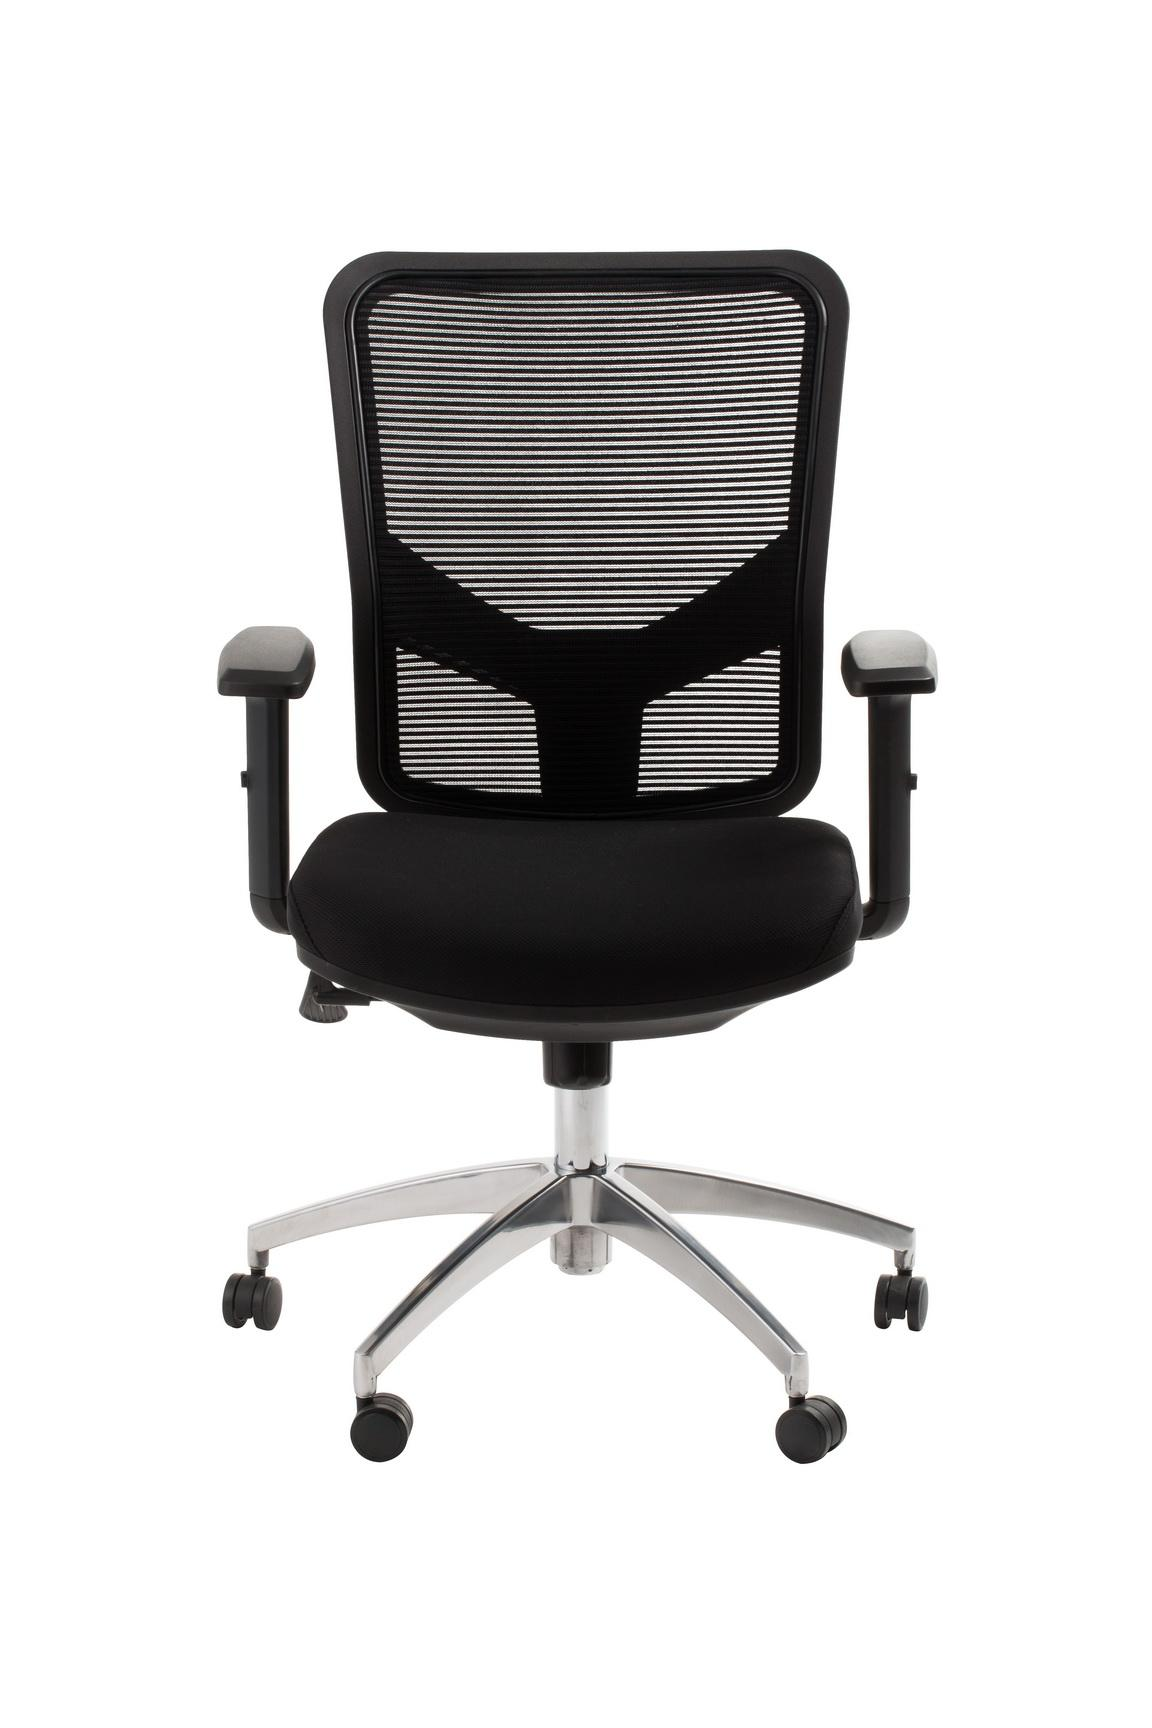 Brisbane Office Furniture Store Office Furnitures Office Chairs